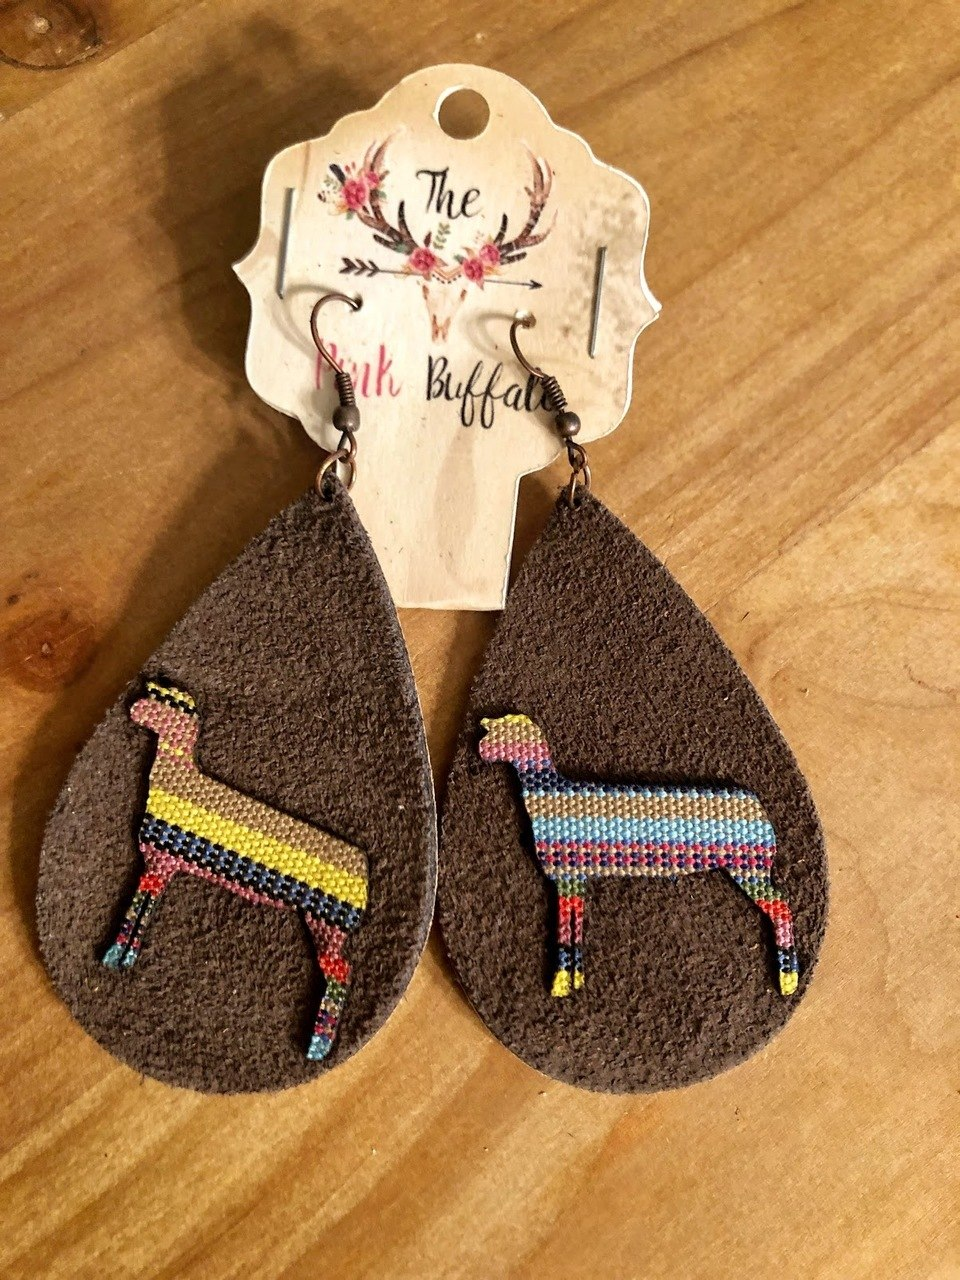 Steer Serape Earrings